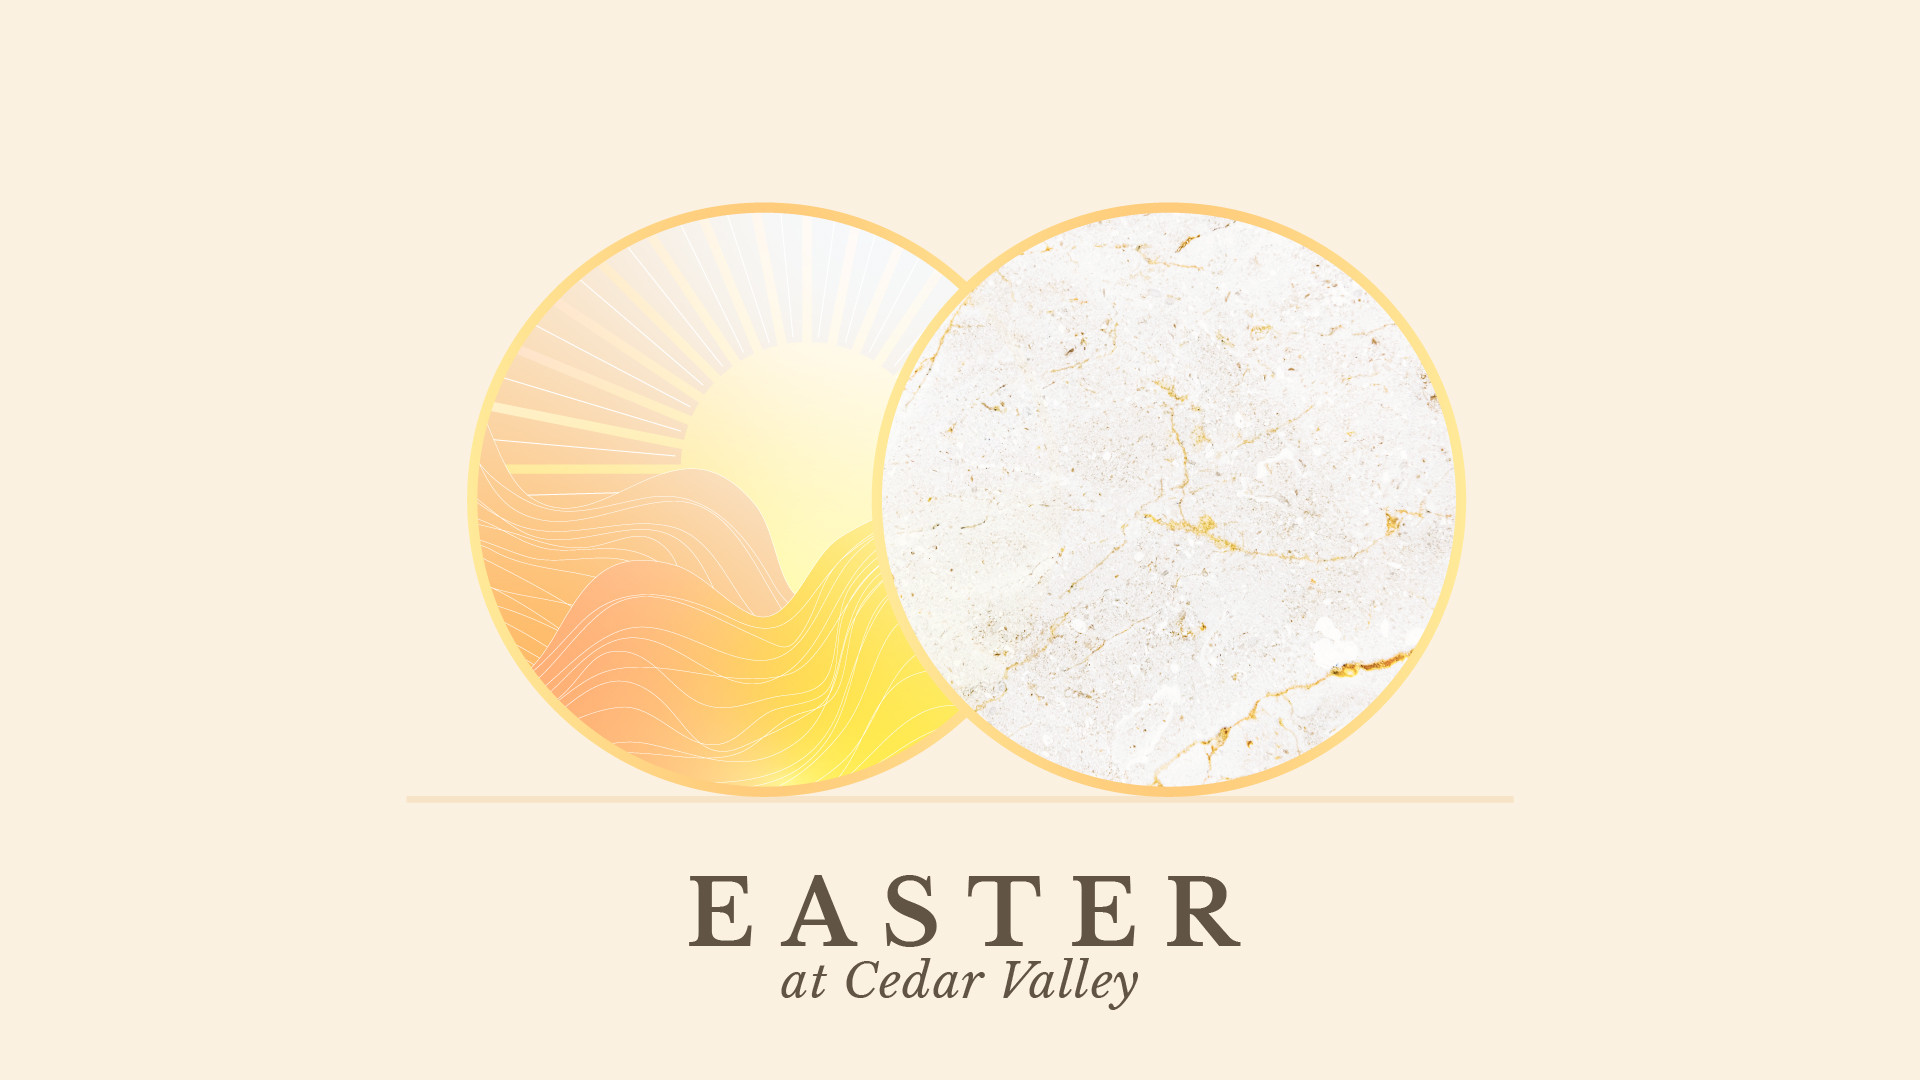 Easter at Cedar Valley